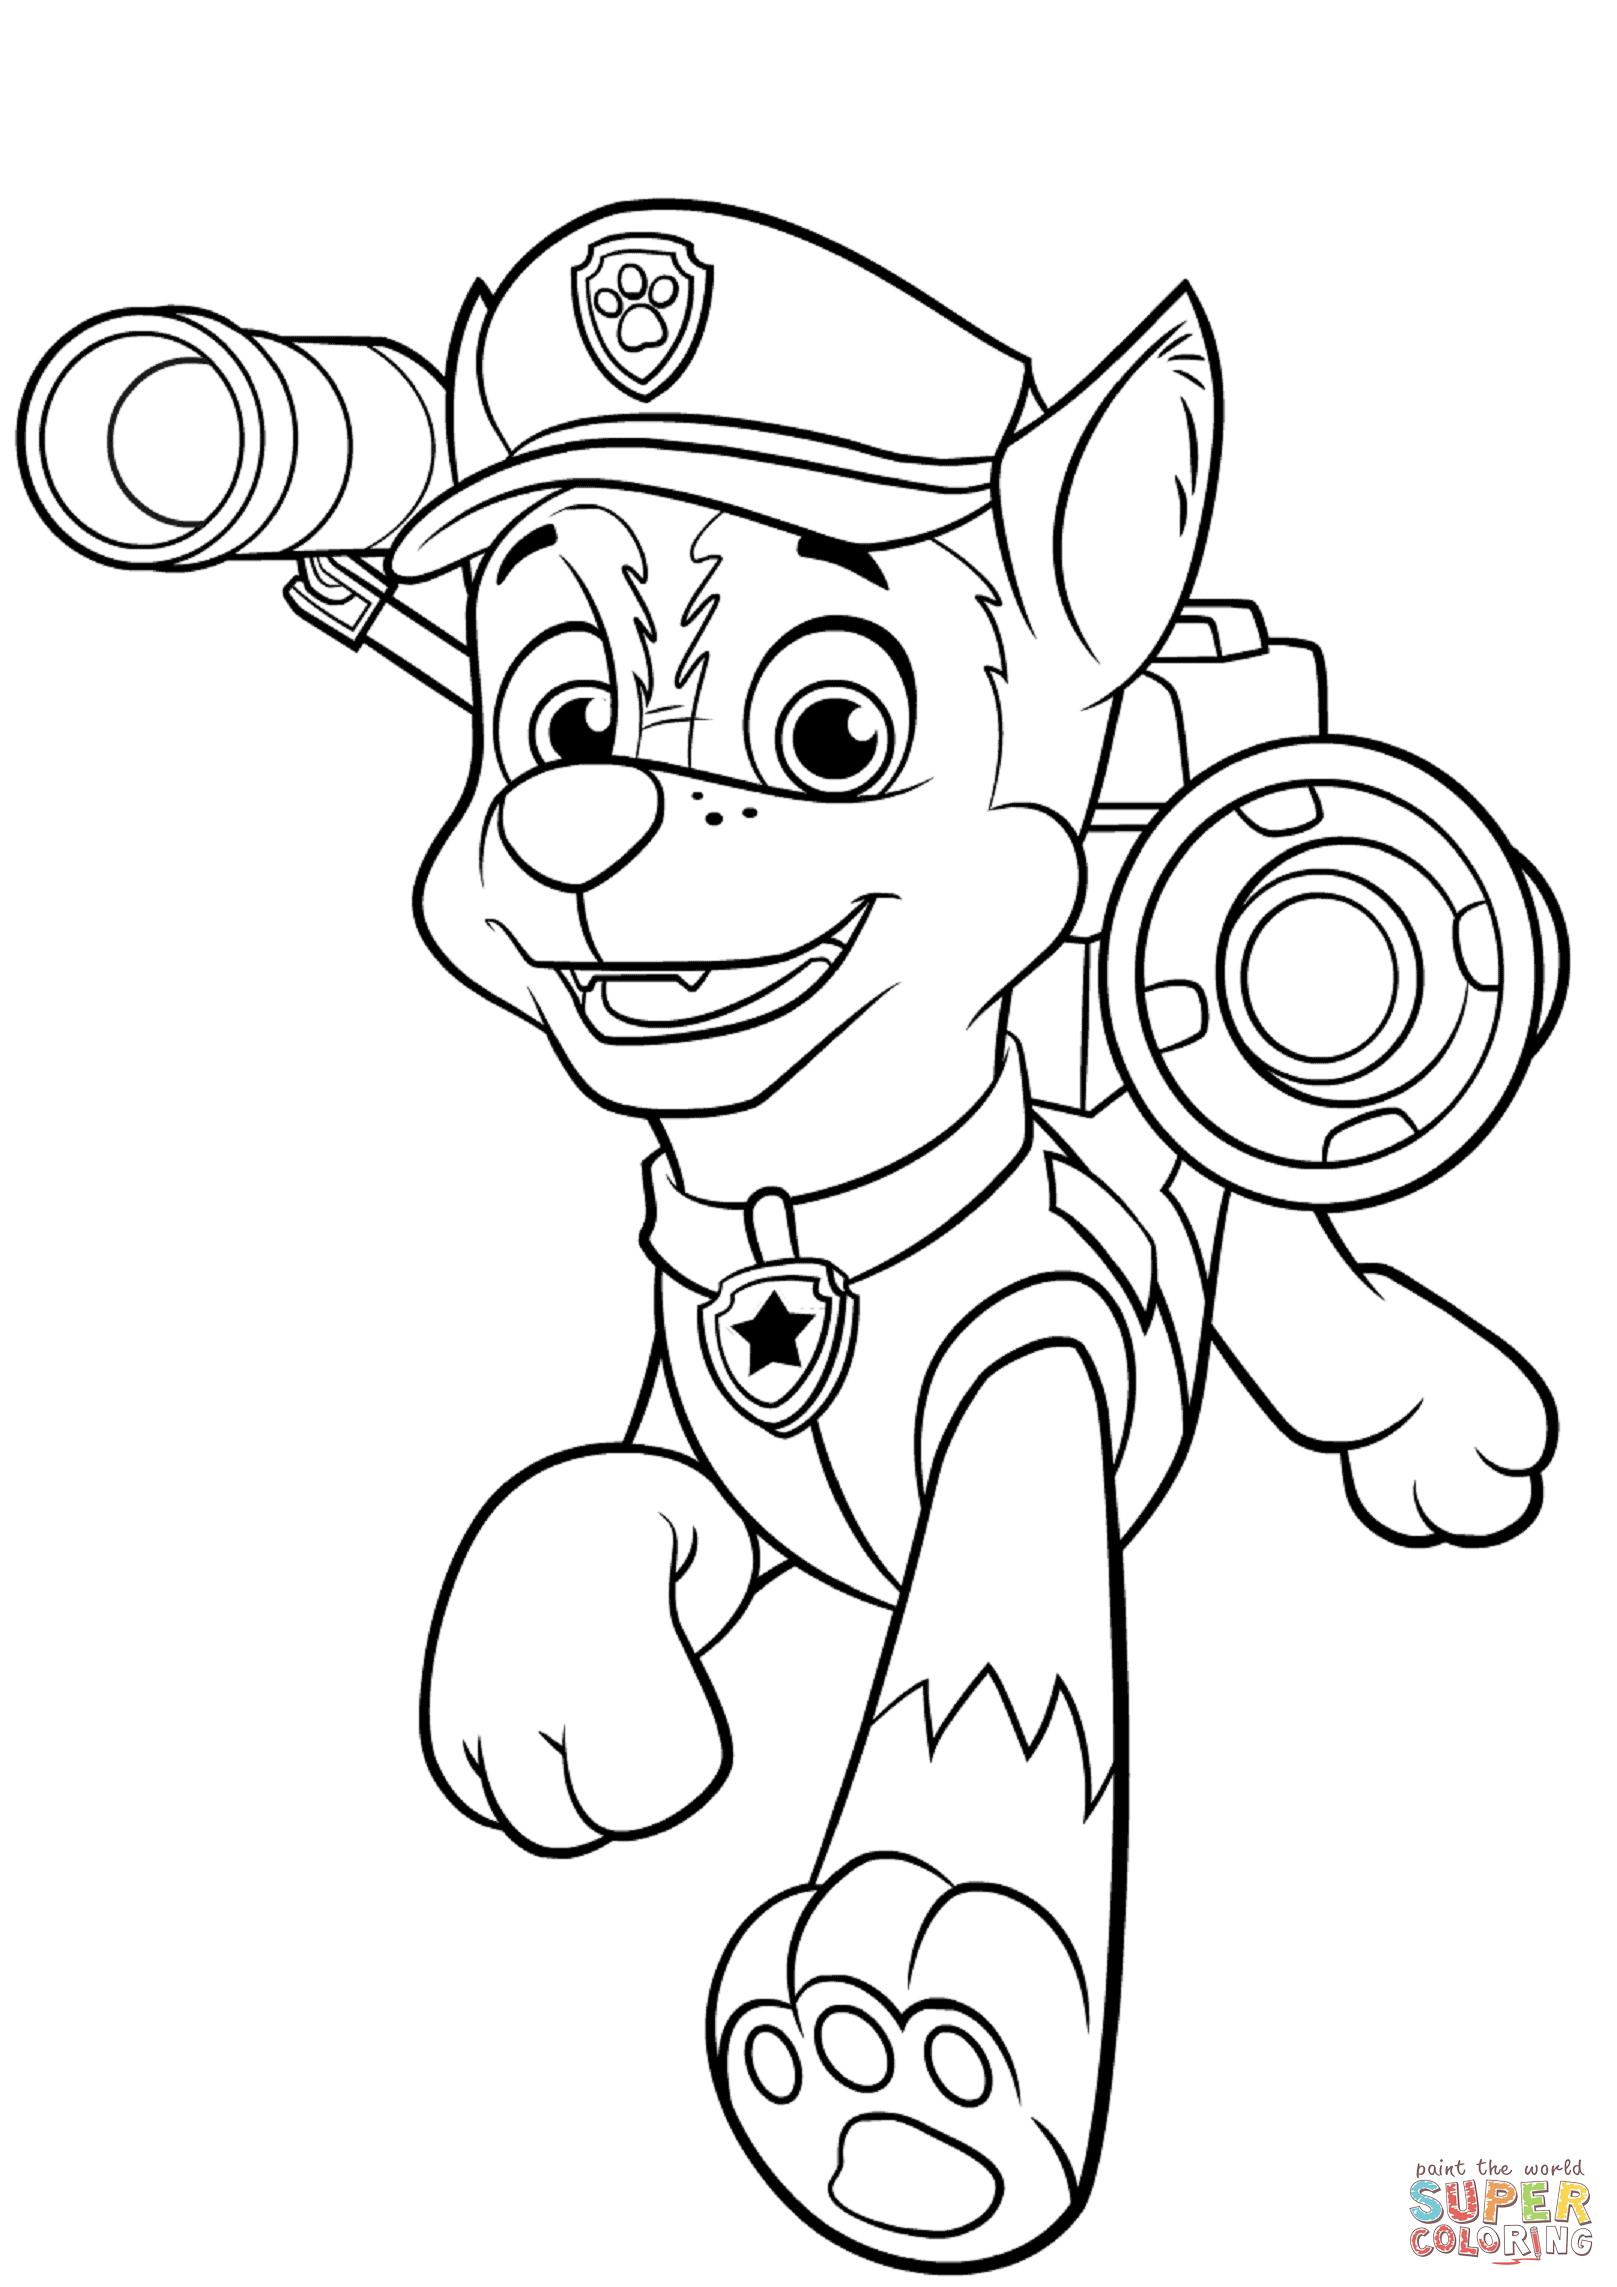 Pin by Maria Rodriguez on Disney Paw patrol coloring